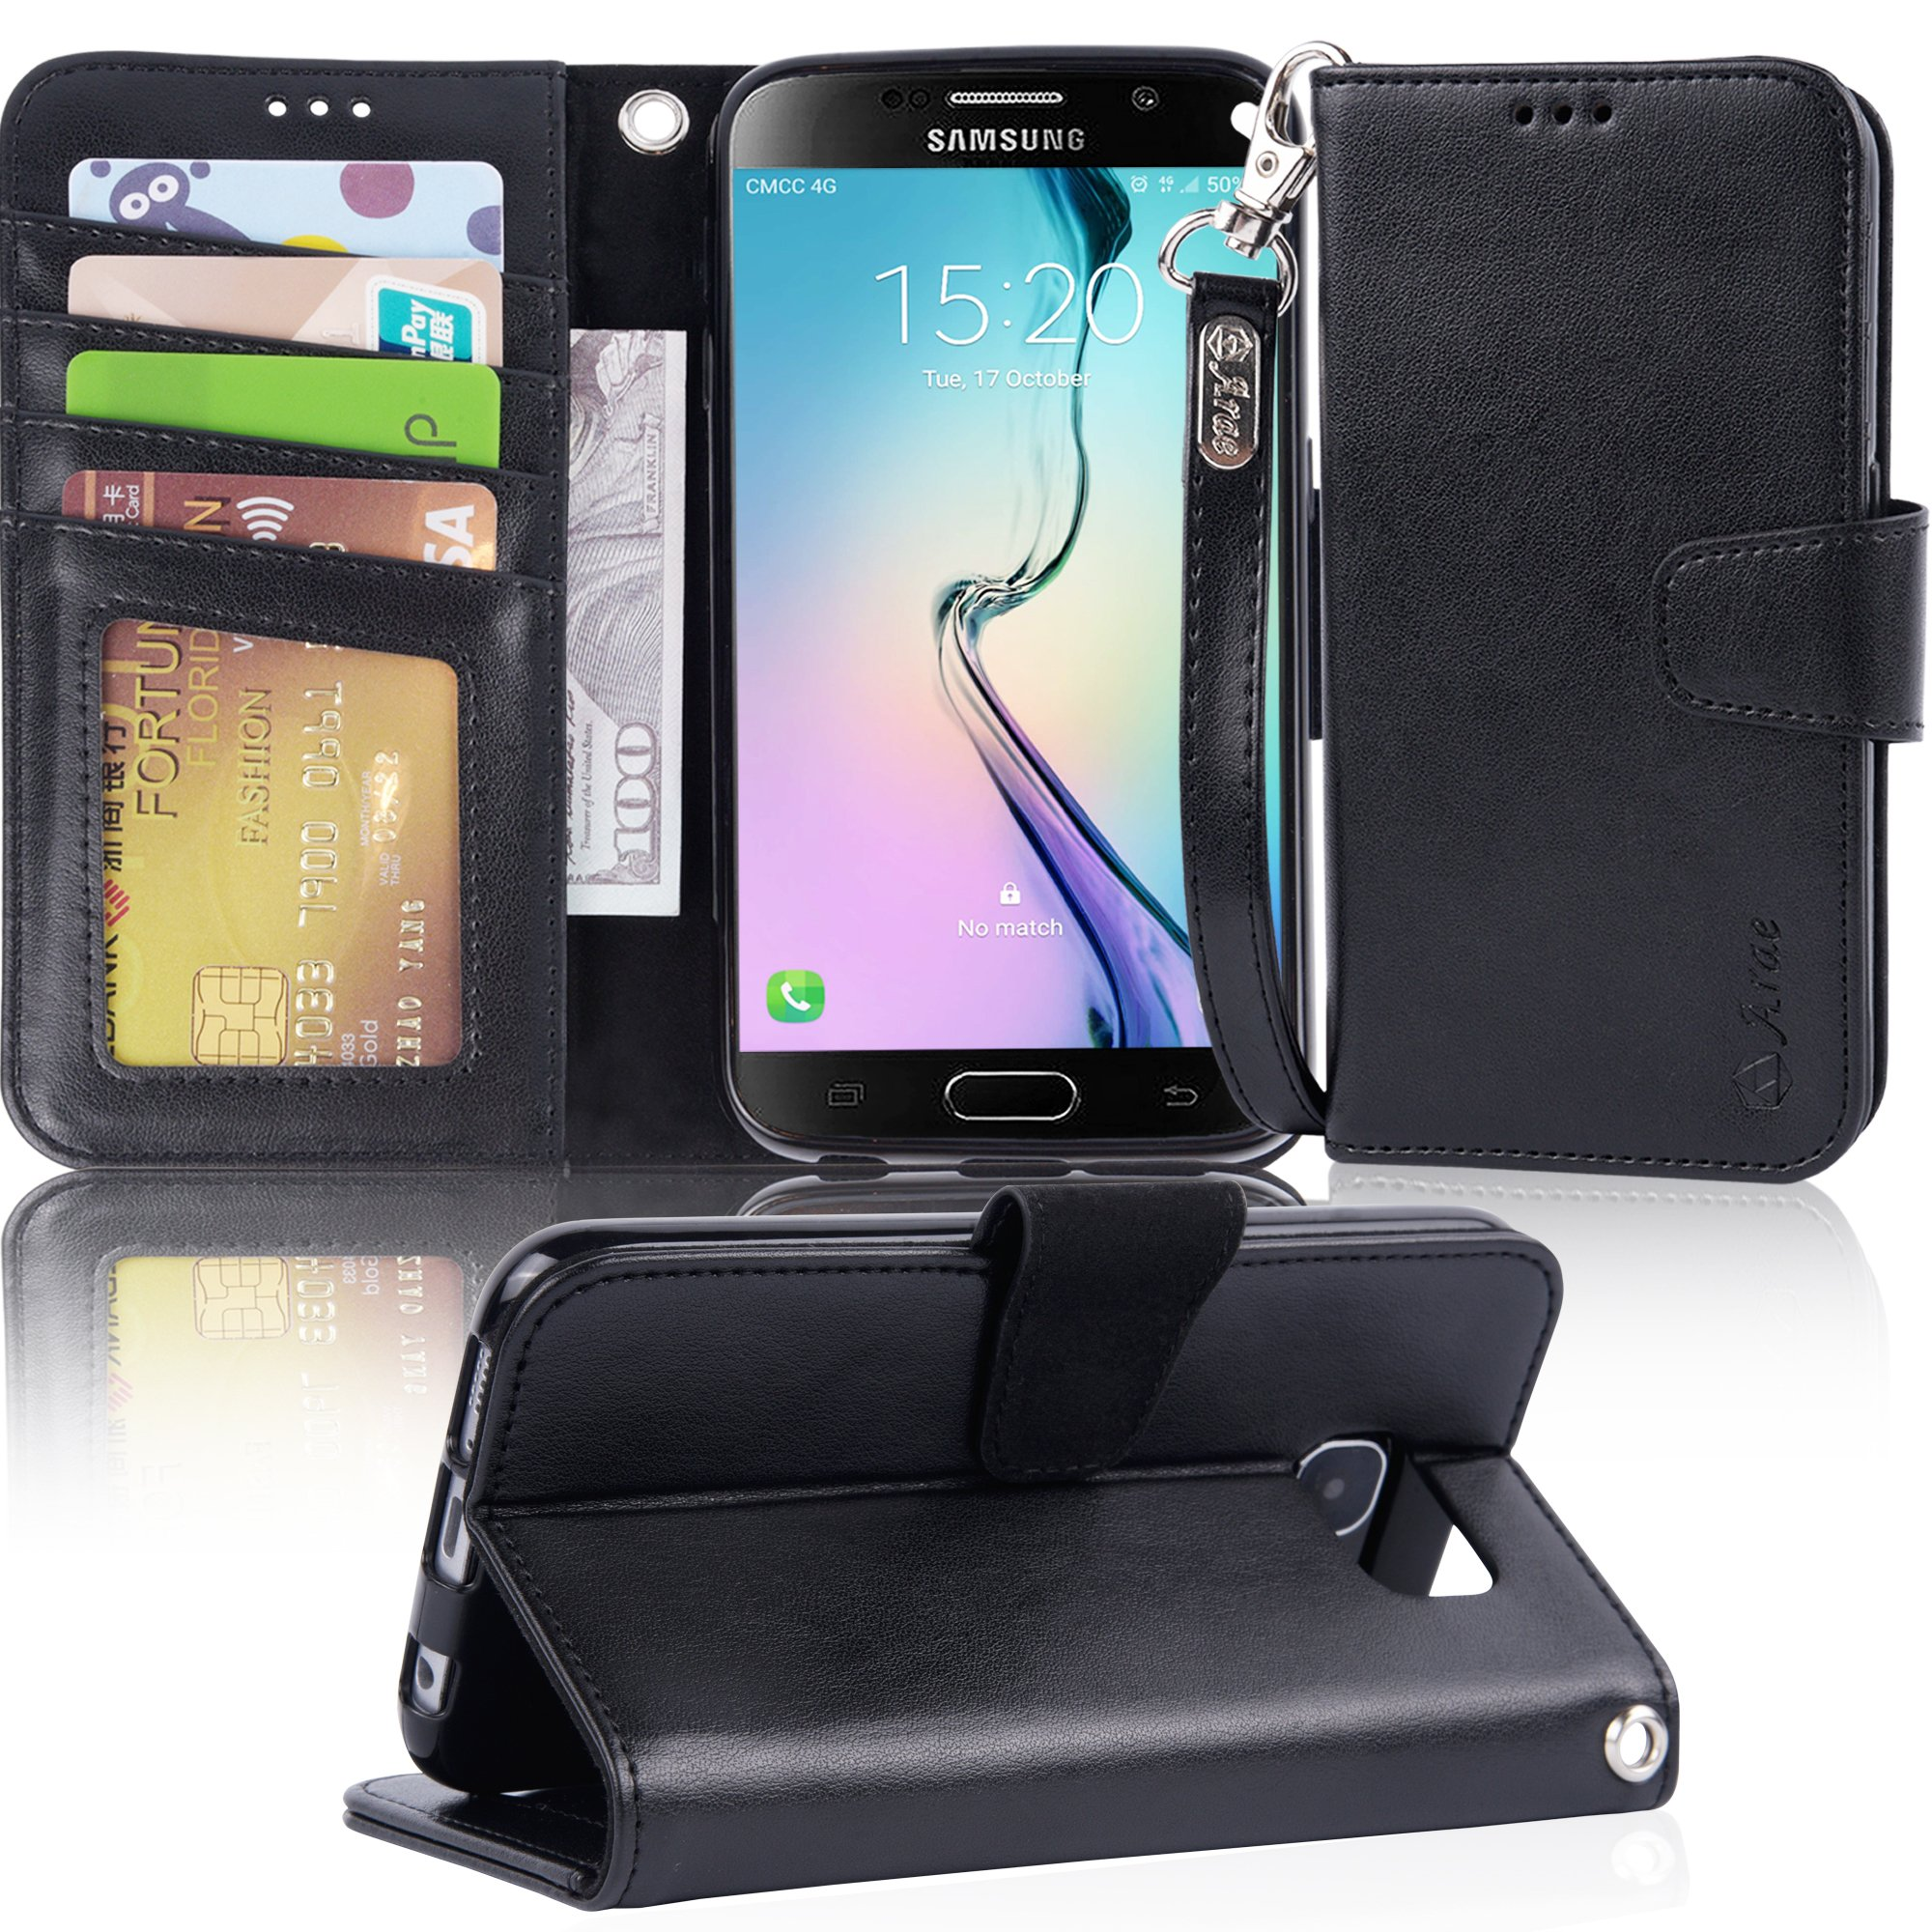 Arae Galaxy S6 Case, Samsung Galaxy S6 wallet case, [Wrist Strap] Flip Folio [Kickstand Feature] PU leather wallet case with ID&Credit Card Pockets For Samsung Galaxy S6 (Black)